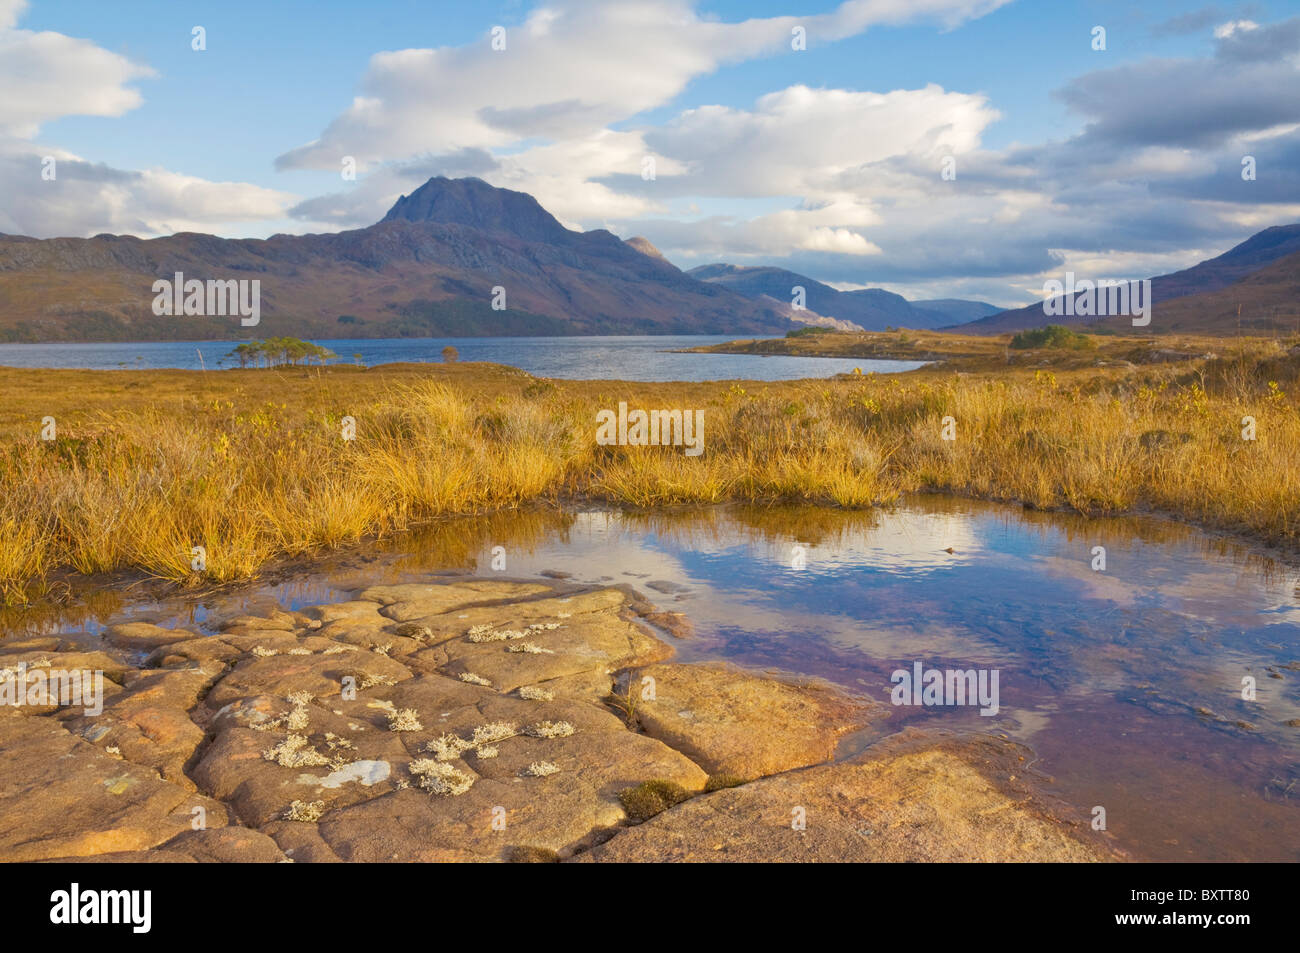 Loch Maree and Slioch Wester Ross Scotland UK GB EU Europe - Stock Image